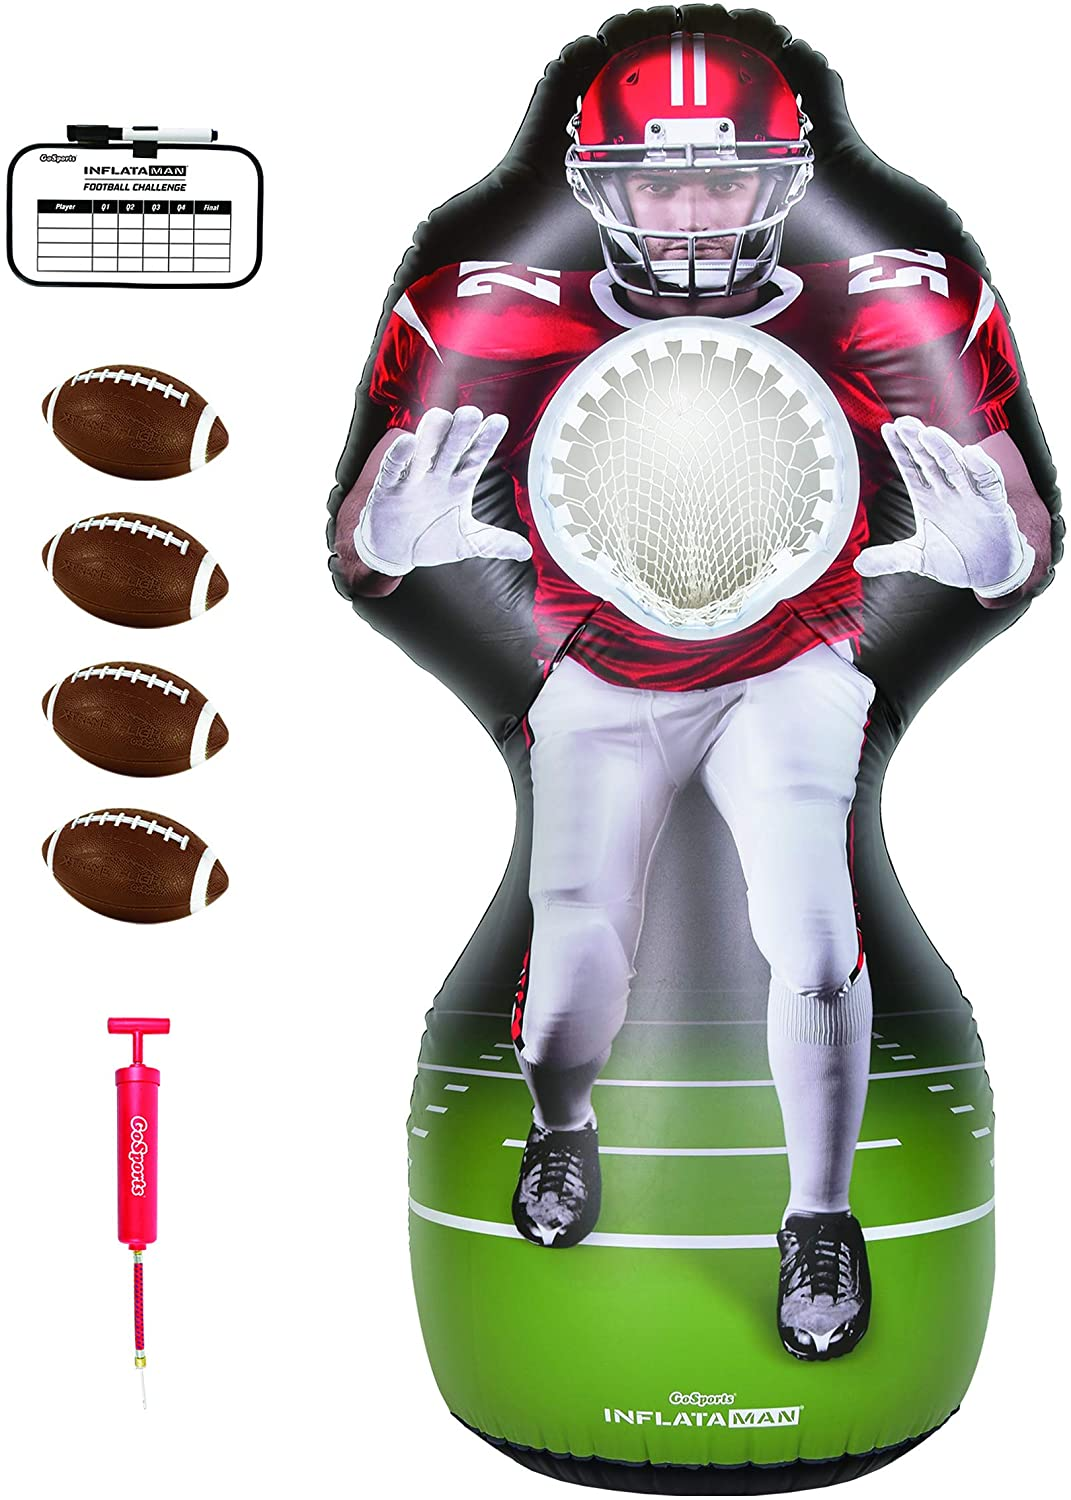 Free shipping on posting reviews GoSports Inflataman Football New popularity Challenge Tou Receiver - Inflatable